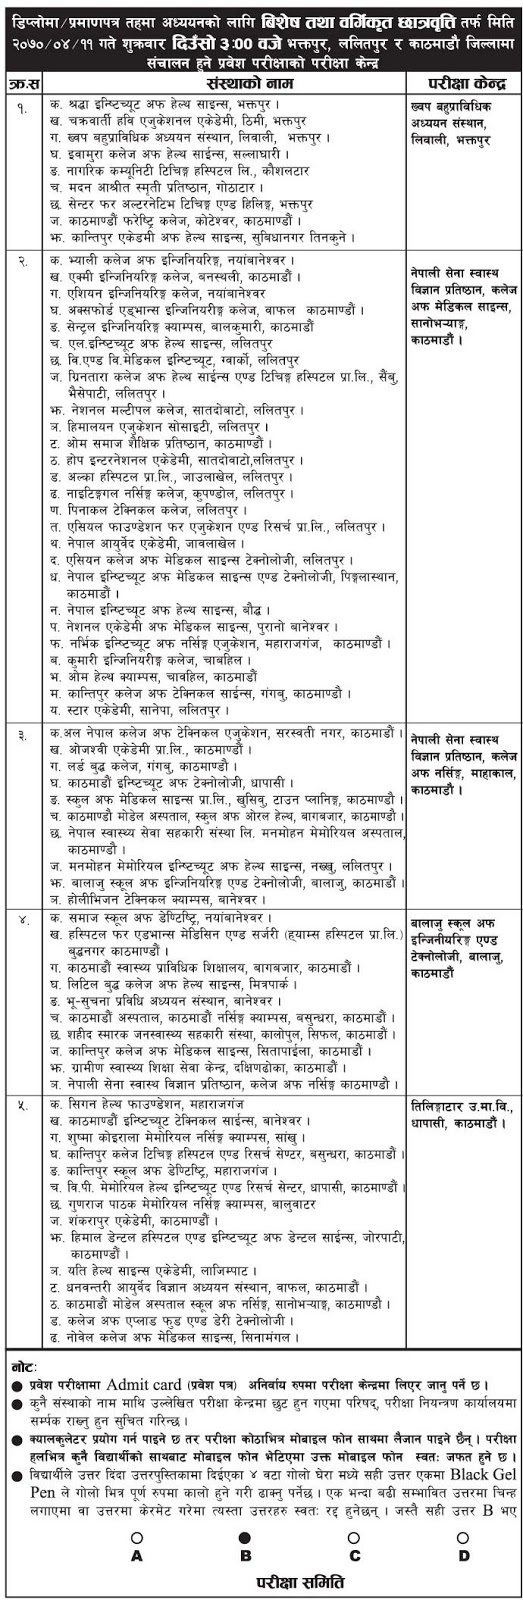 Published exam center notice for diploma entrance examination-2070